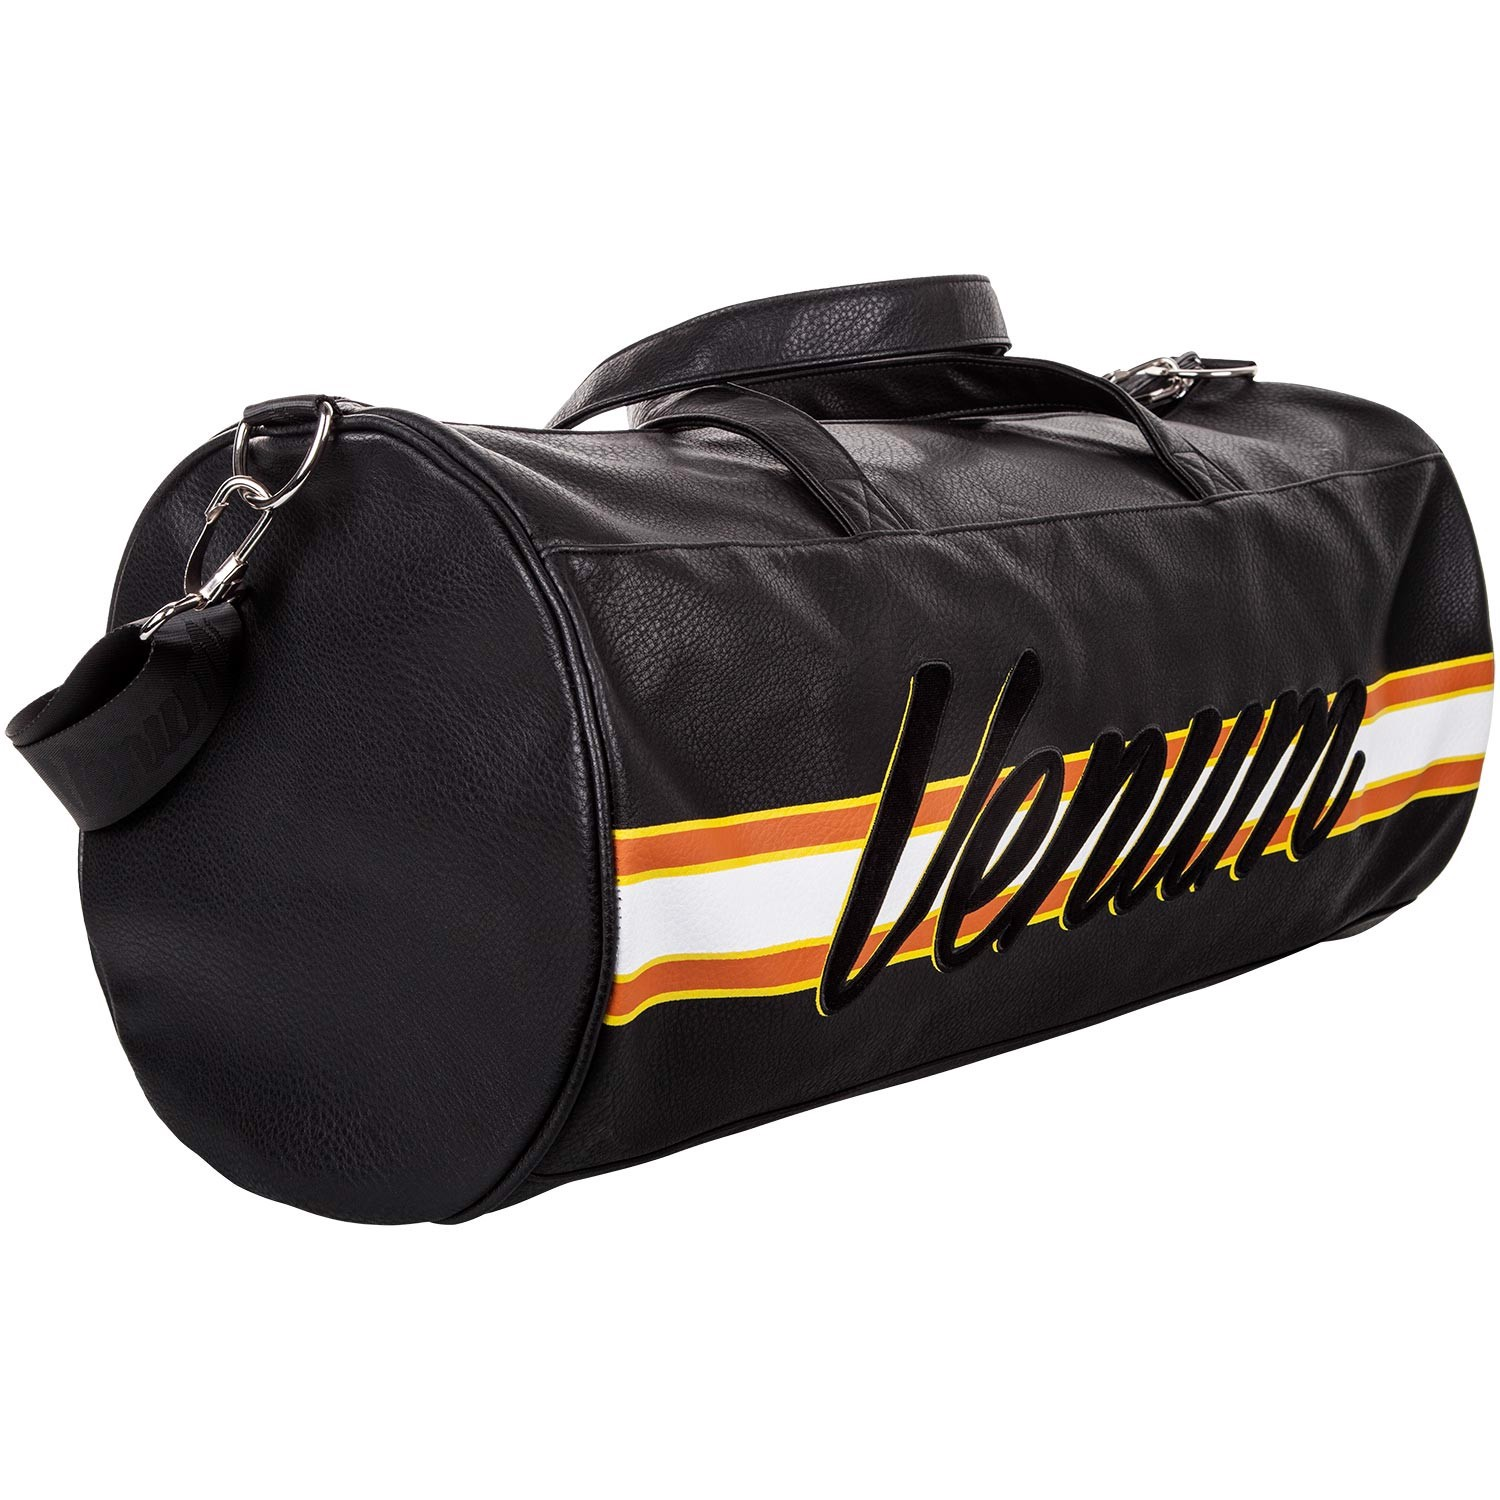 TÚI VENUM CUTBACK SPORT BAG - BLACK/YELLOW